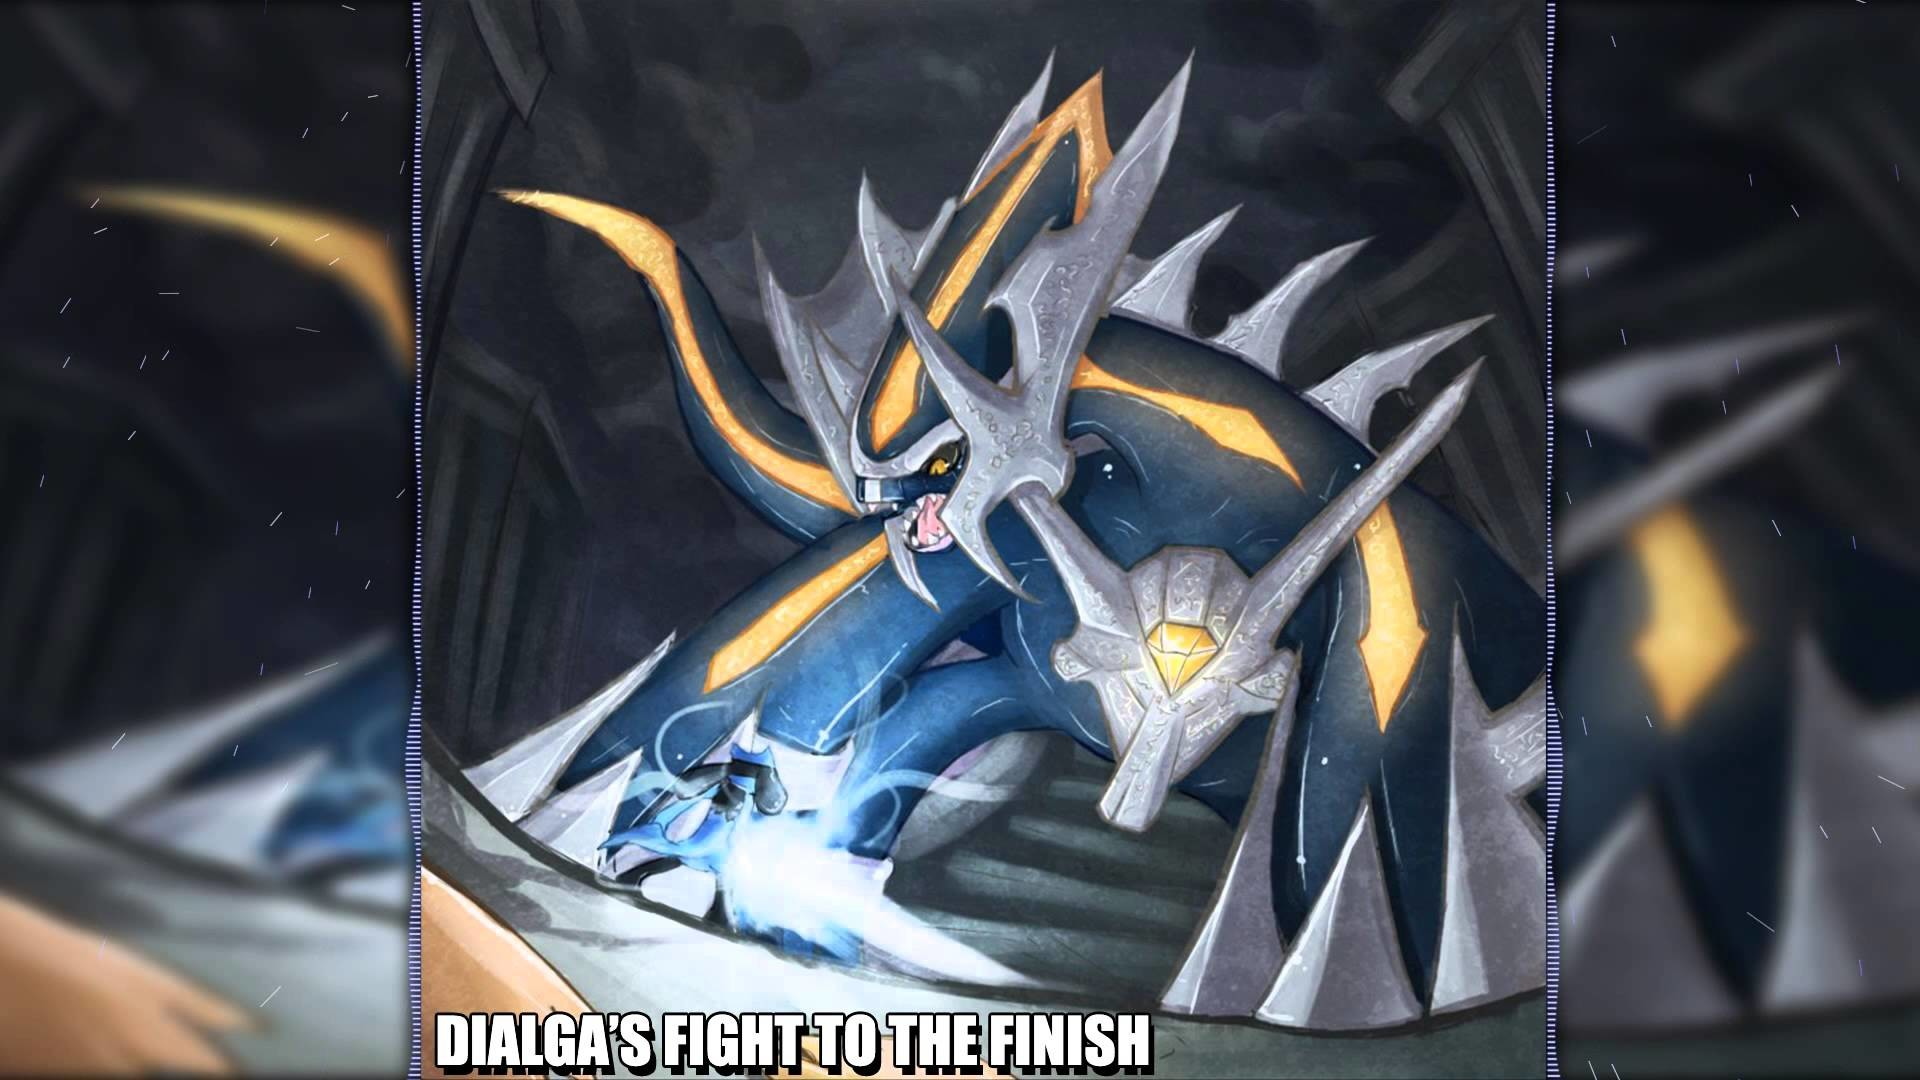 1920x1080 Pokémon Mystery Dungeon 2 - Dialga's Fight to the Finish! Remix